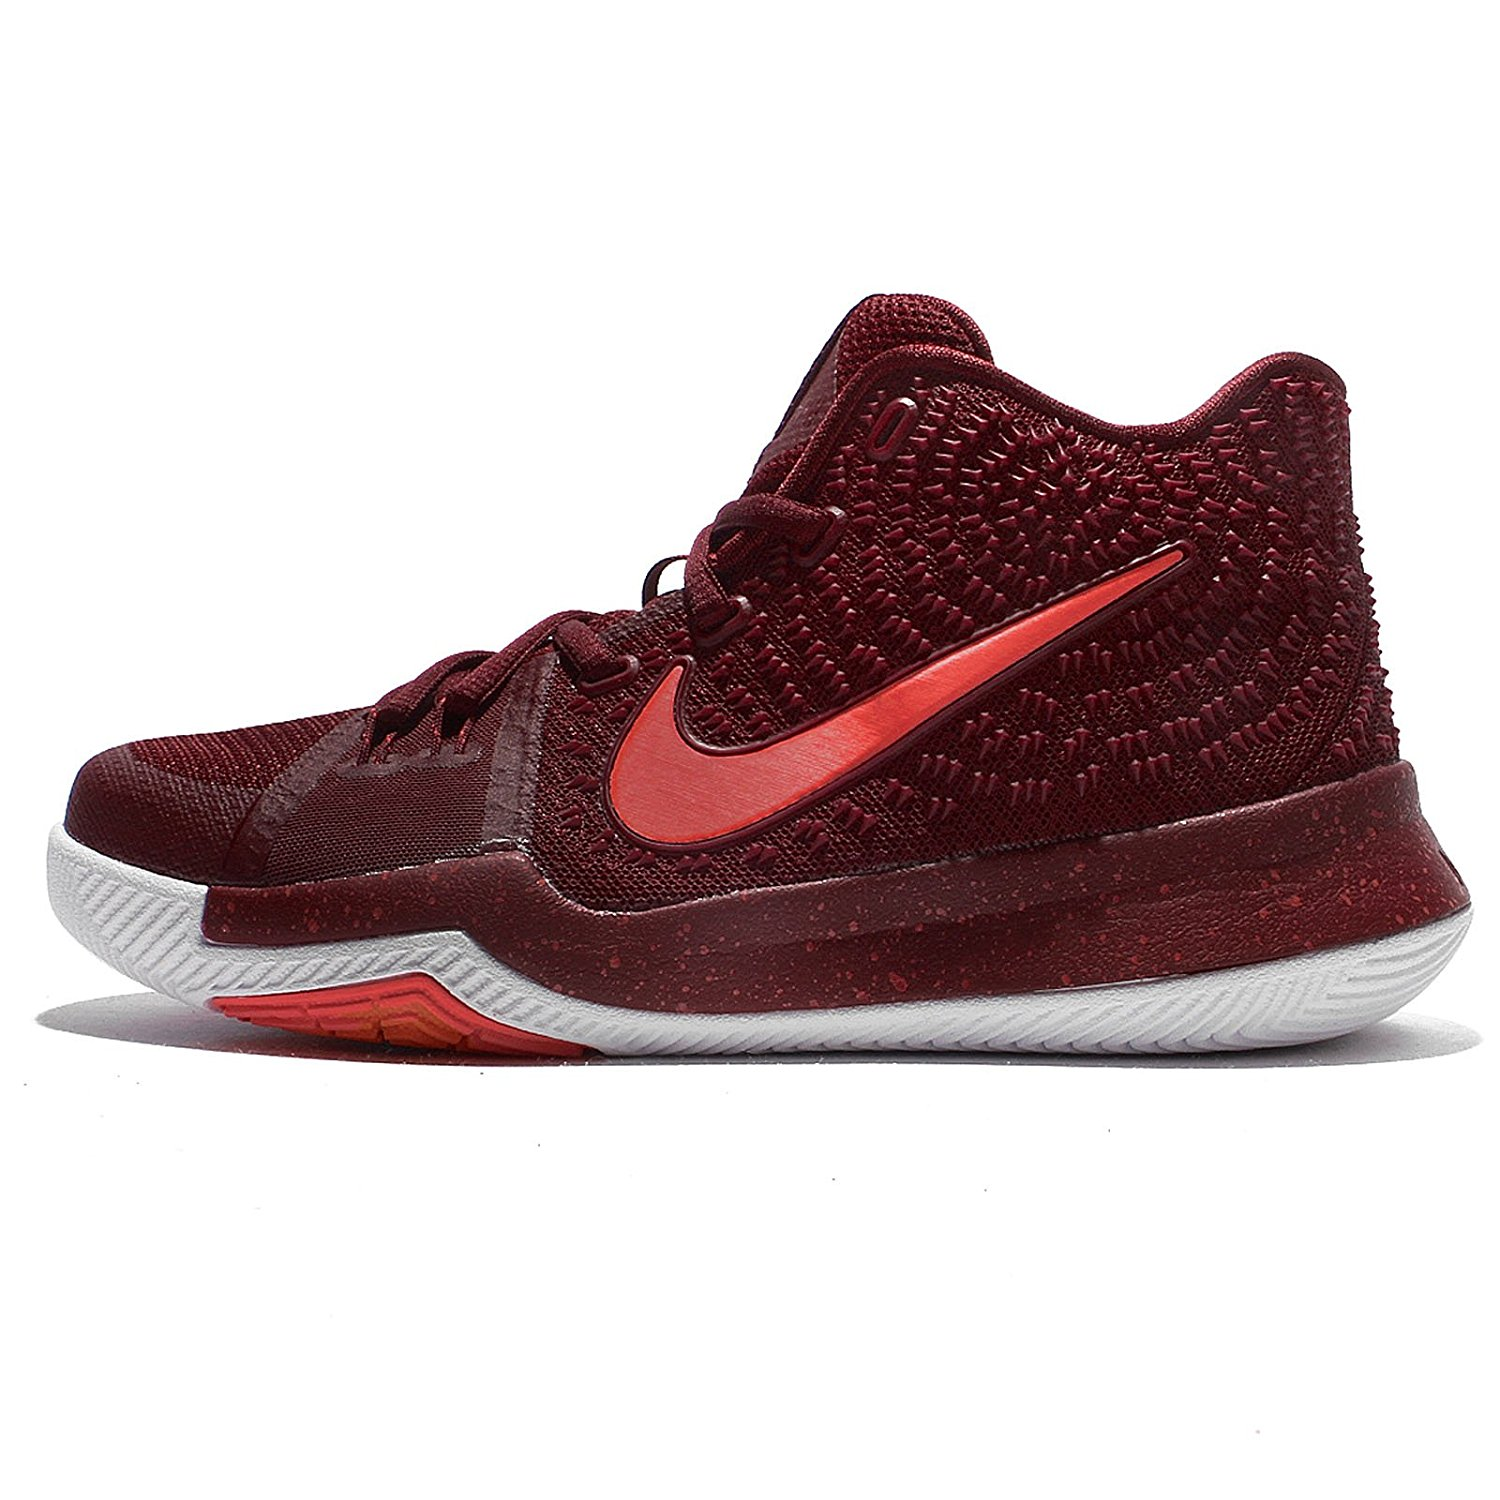 08e78a67ebb4 Get Quotations · Nike Kids Kyrie 3 GS Warning Basketball shoes 859466-681